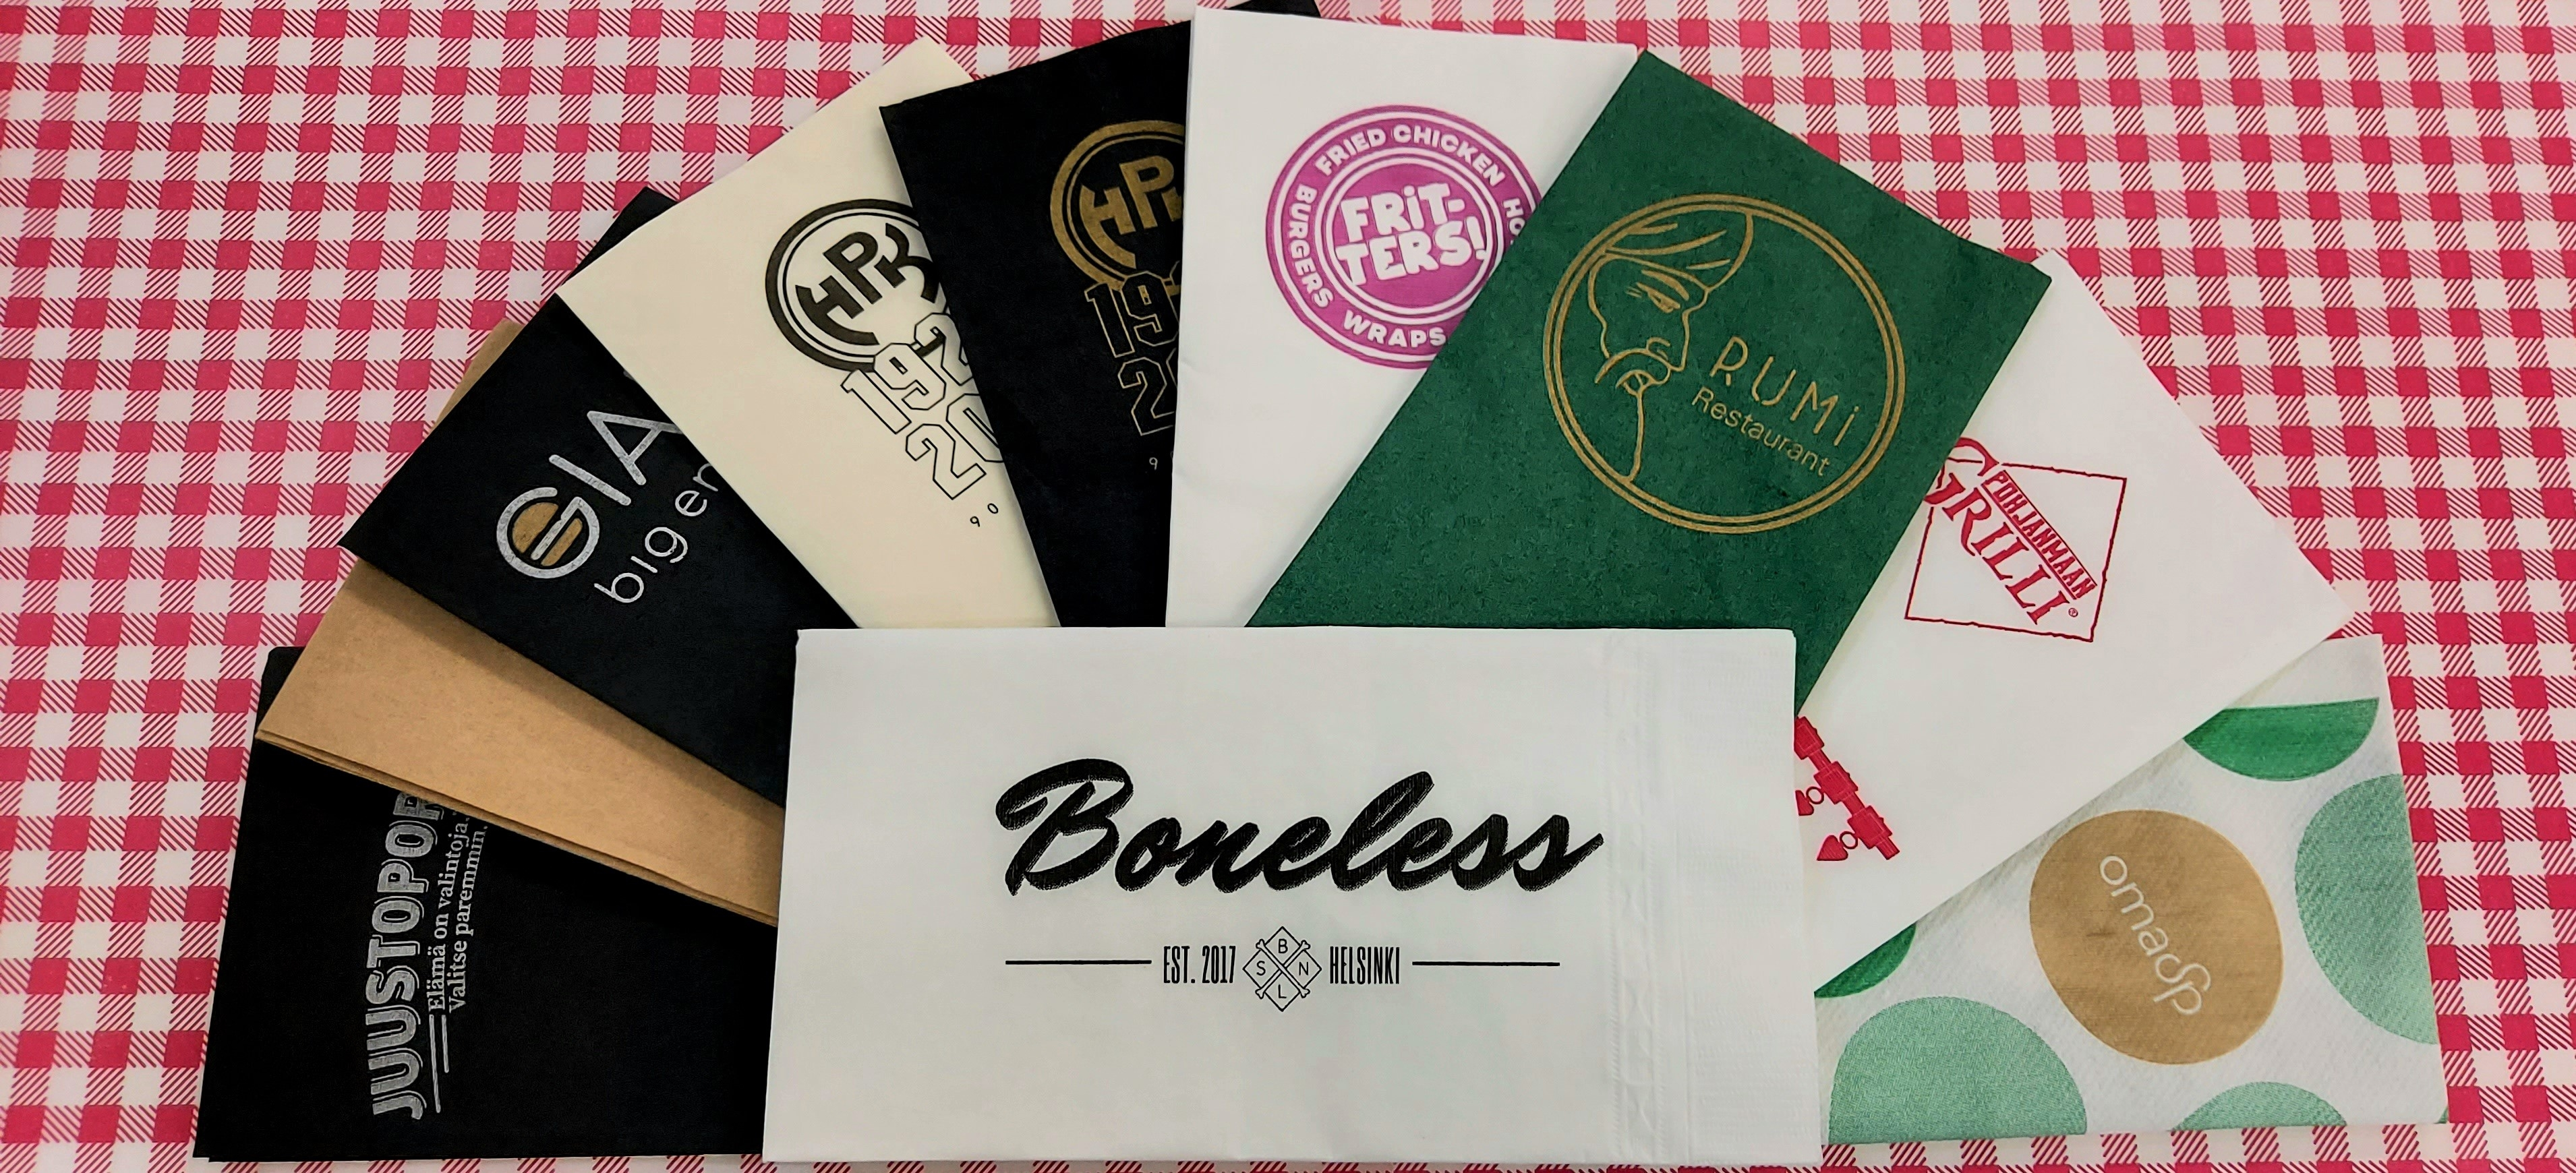 Selection of logoprinted serviettes on top of pepita printed food paper